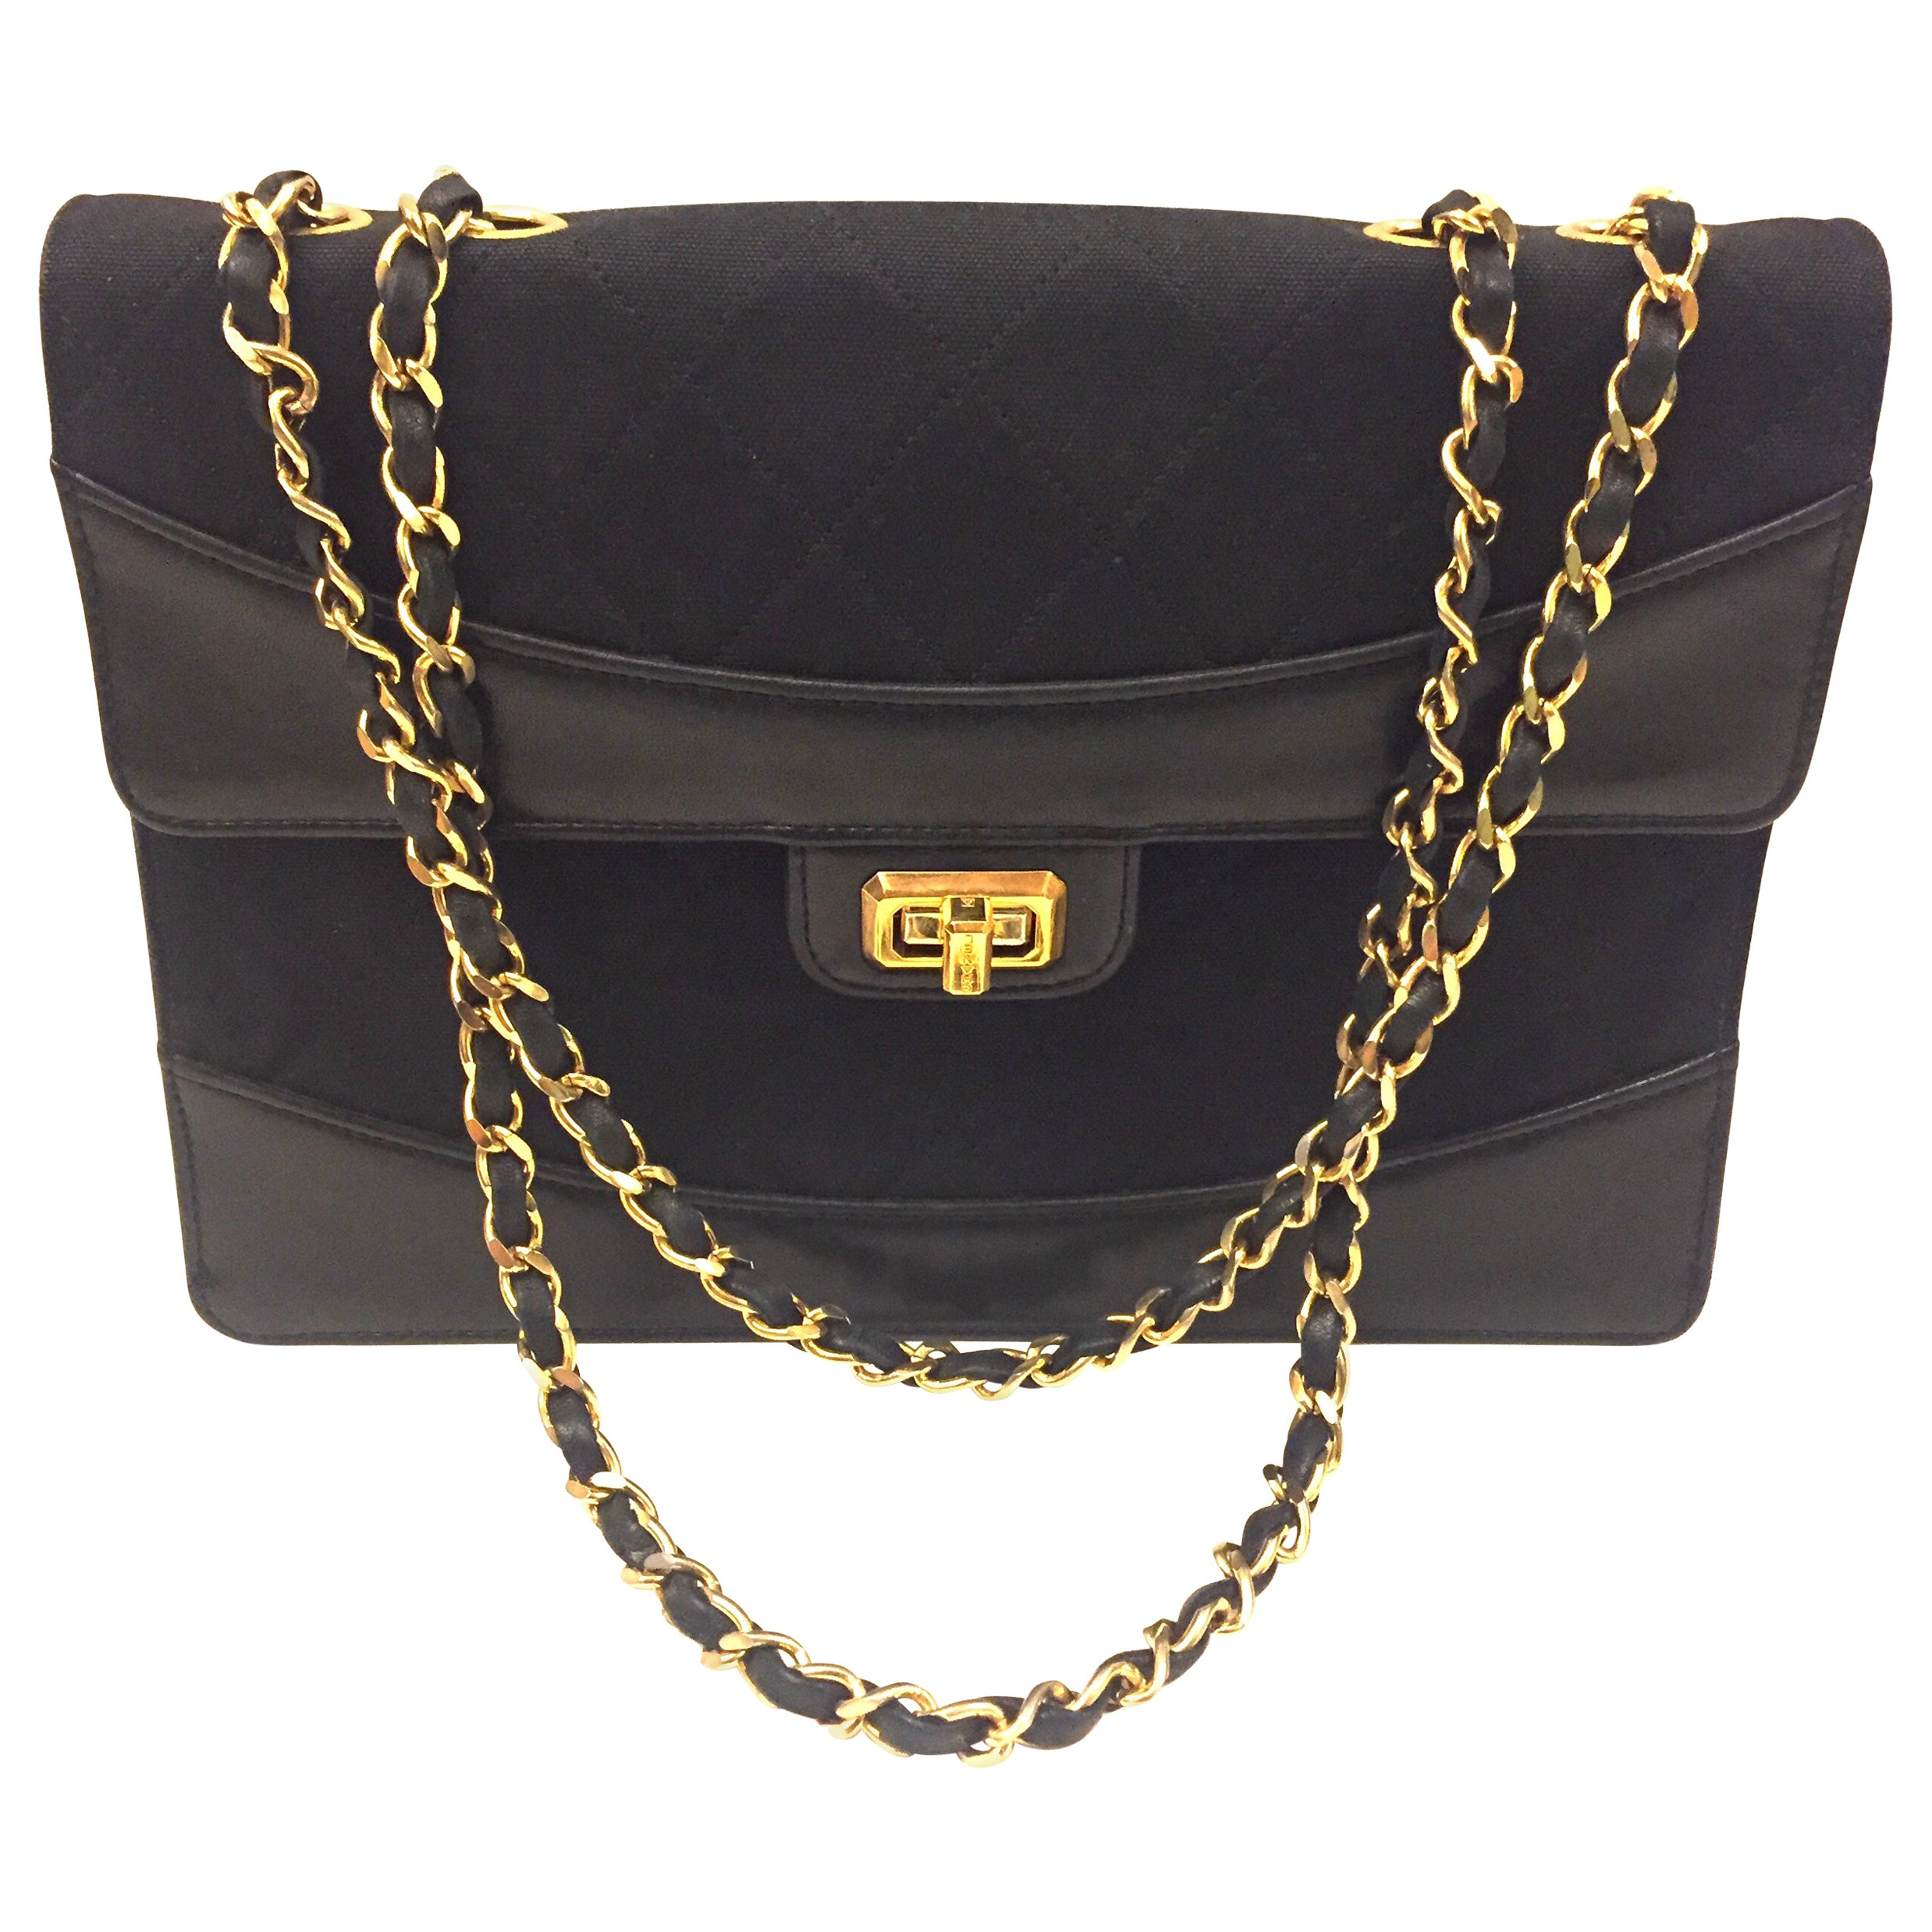 Chanel black canvas/leather shoulder bag